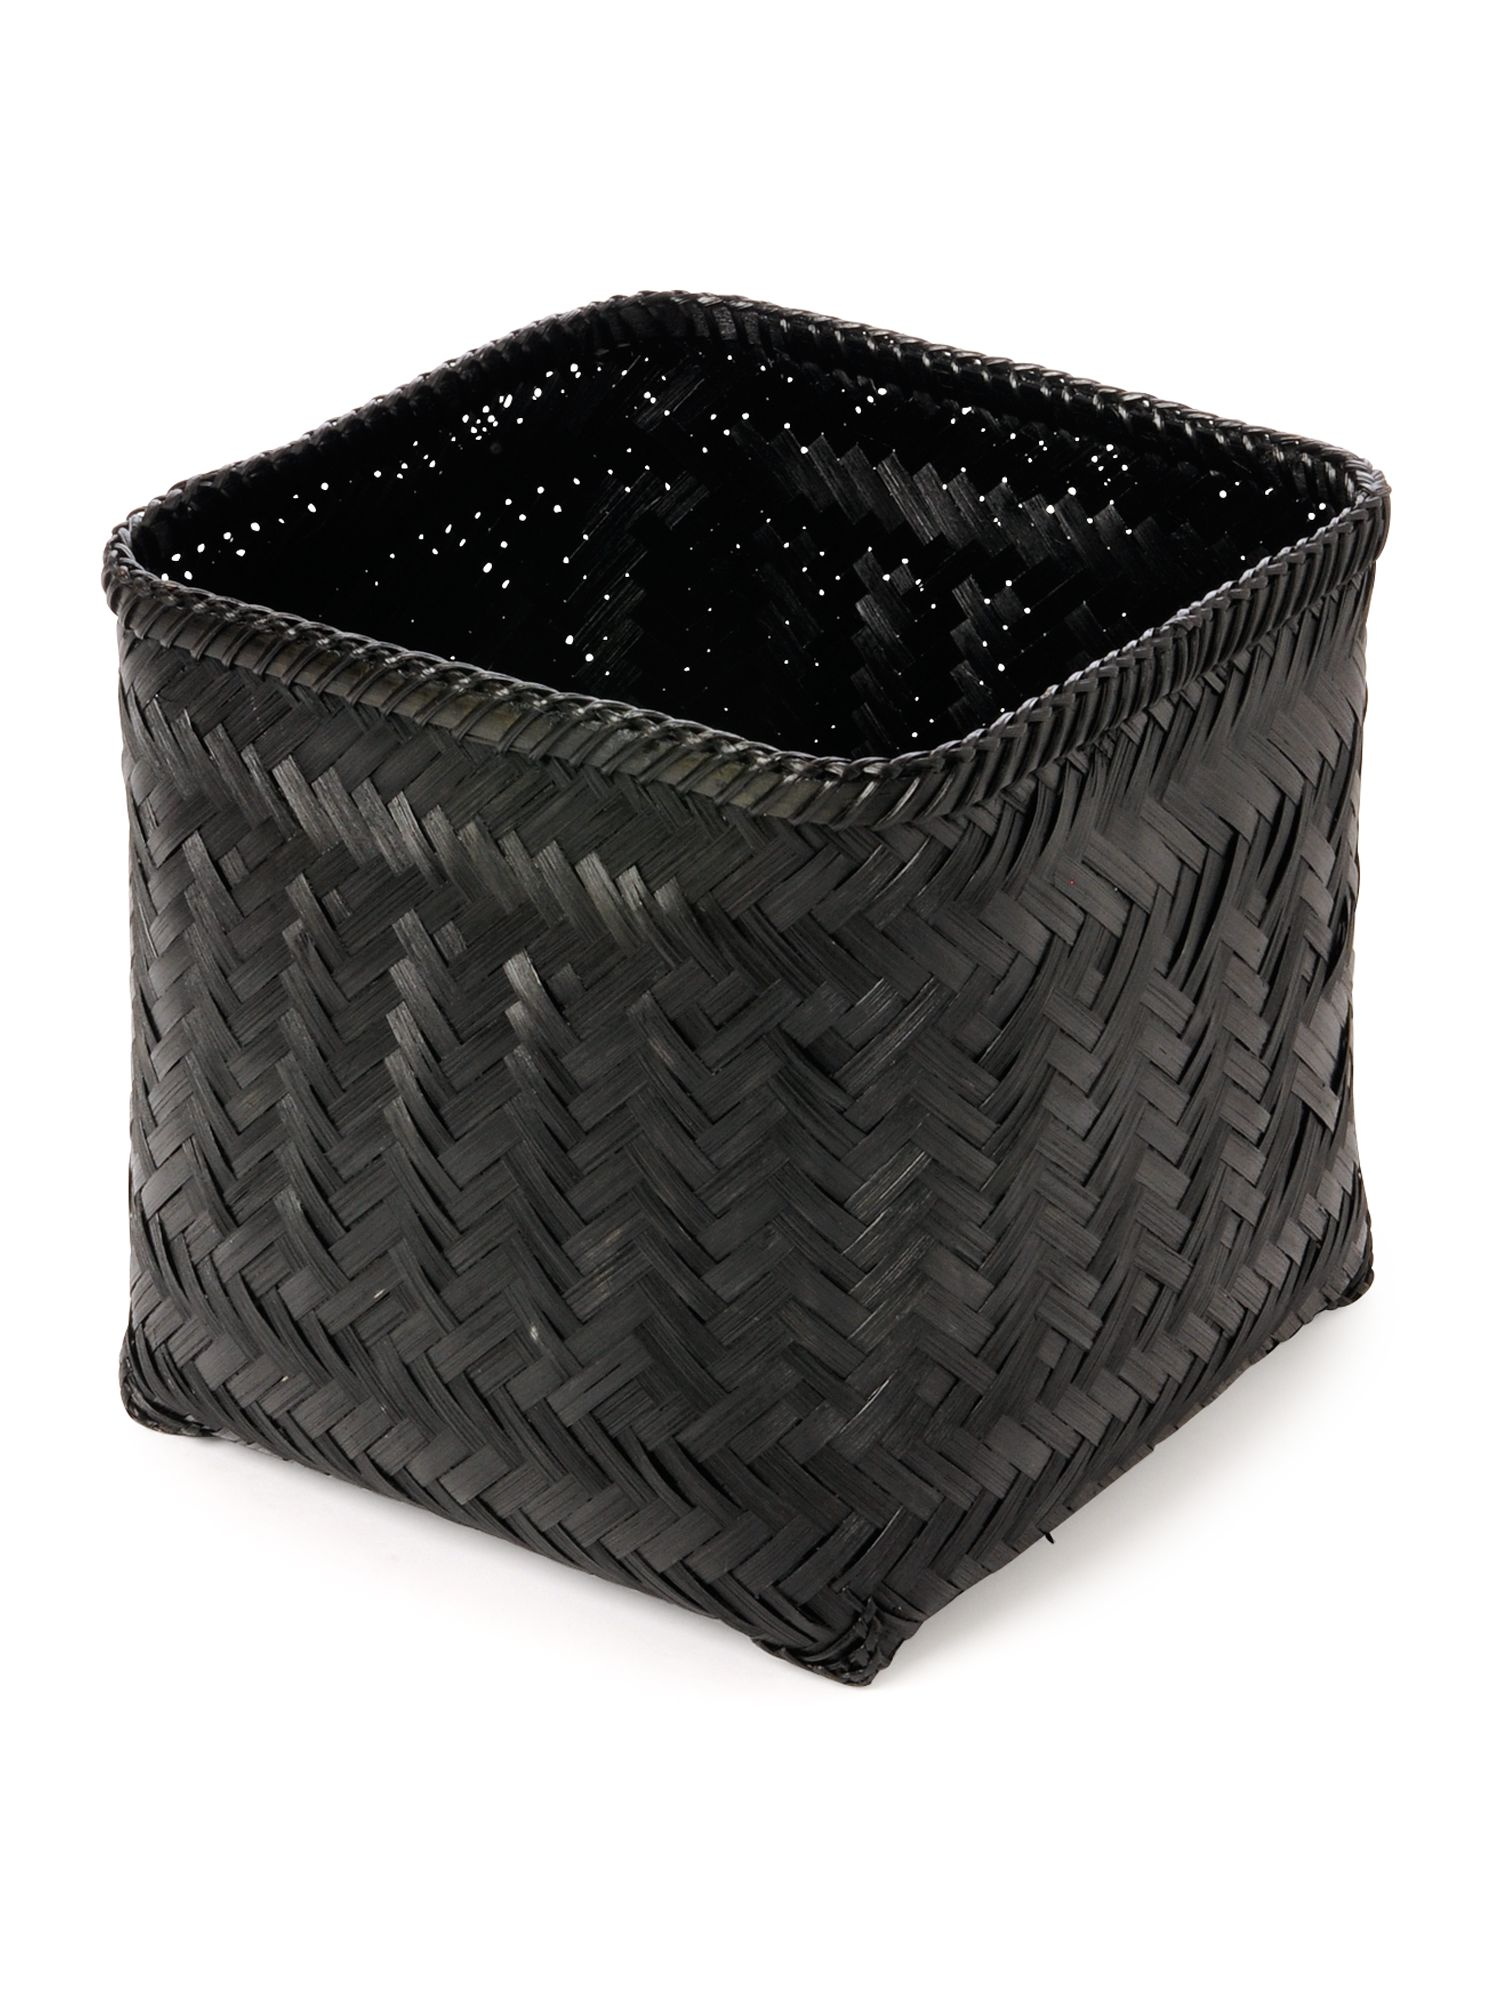 Bamboo waste bin in black